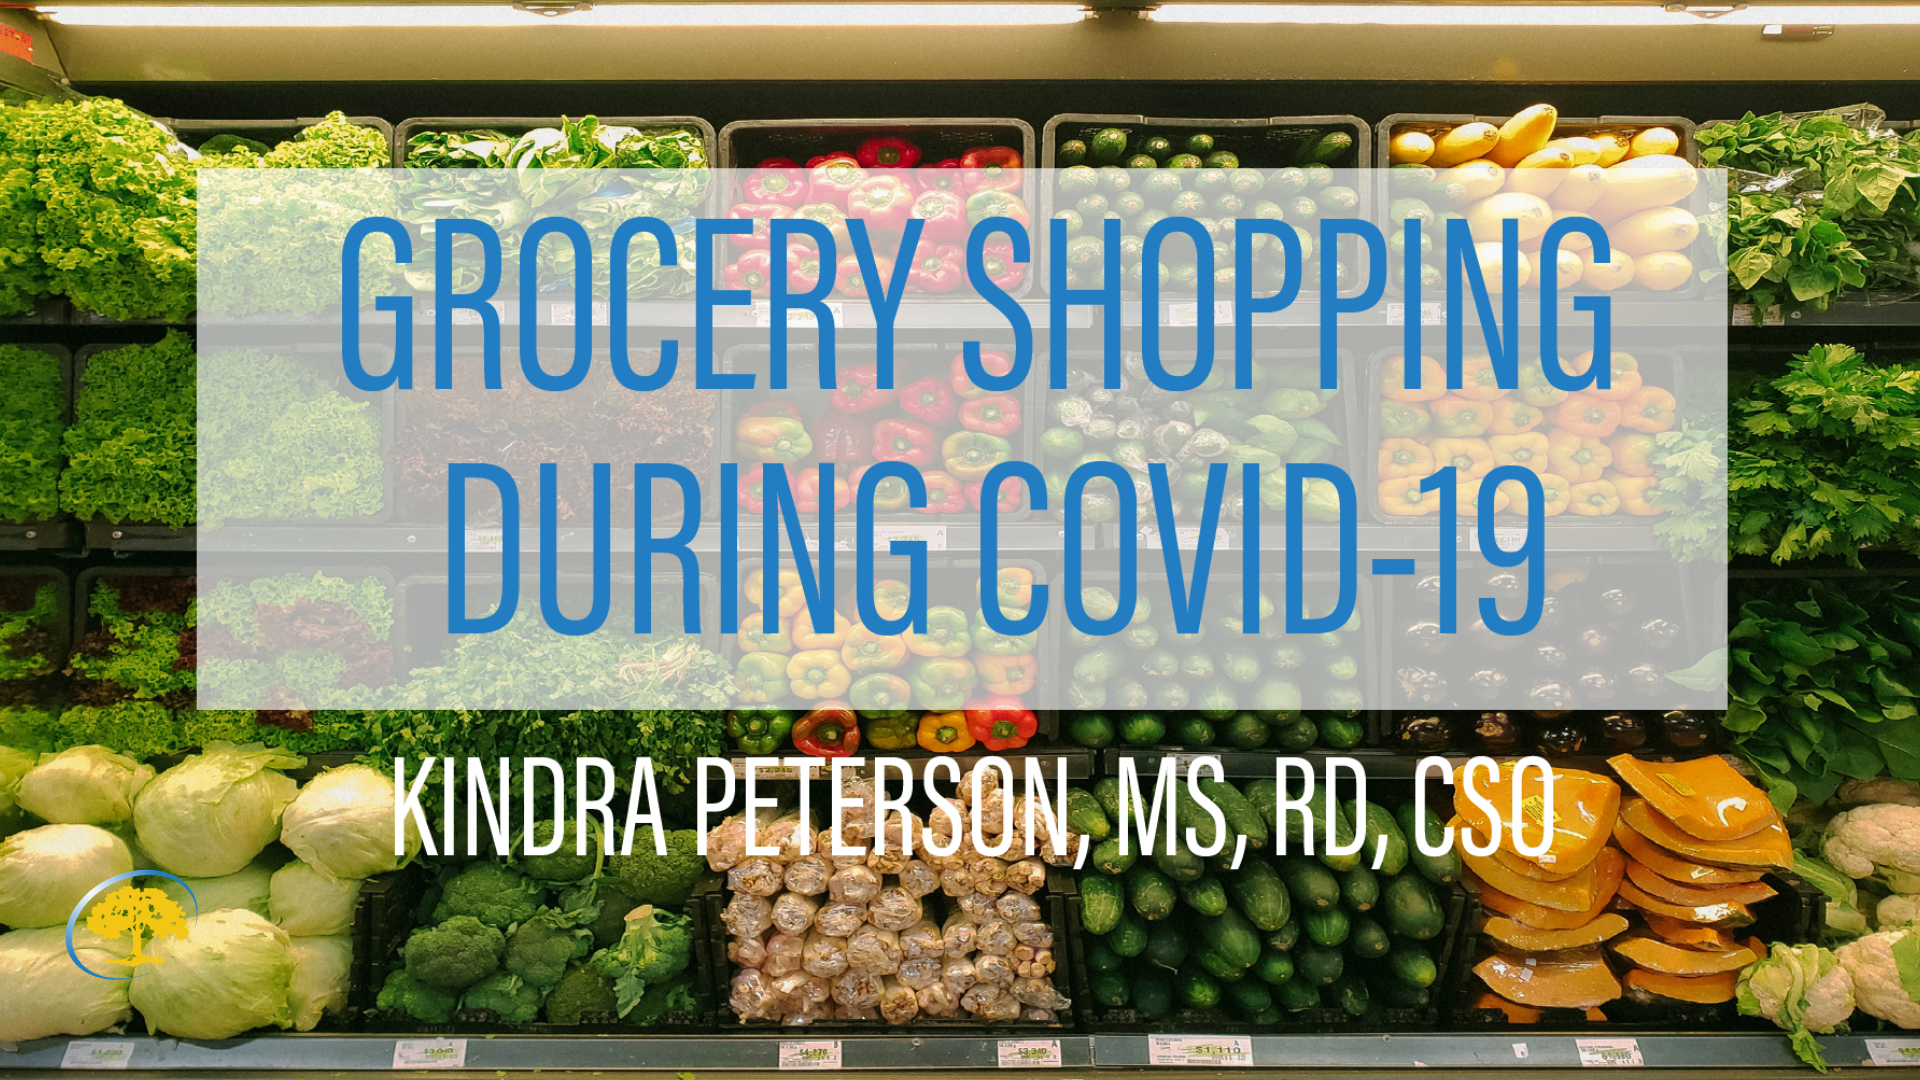 Grocery Shopping During Covid 19